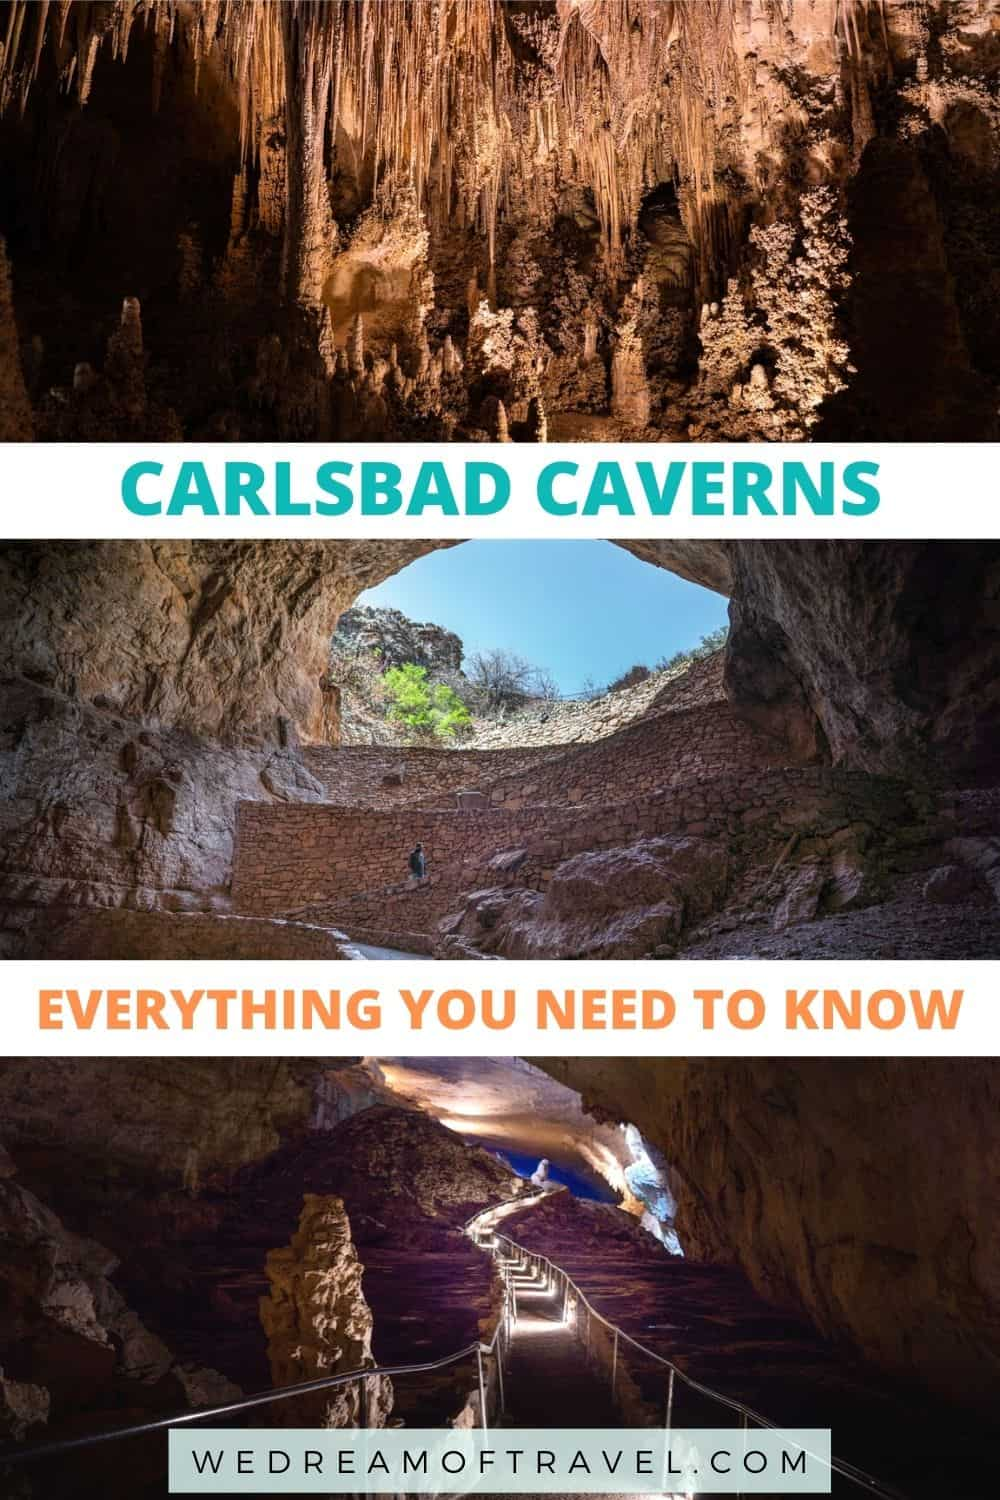 Learn everything you need to know about visiting Carlsbad Caverns National Park, one of the most impressive cave systems in the world!  Carlsbad Caverns Photography | Carlsbad Caverns New Mexico | Carlsbad Caverns National Park  | Things to do in New Mexico | Places to Visit in New Mexico | New Mexico National Parks | What to Do in Carlsbad New Mexico | What to Do at Carlsbad Caverns | Caves in New Mexico |